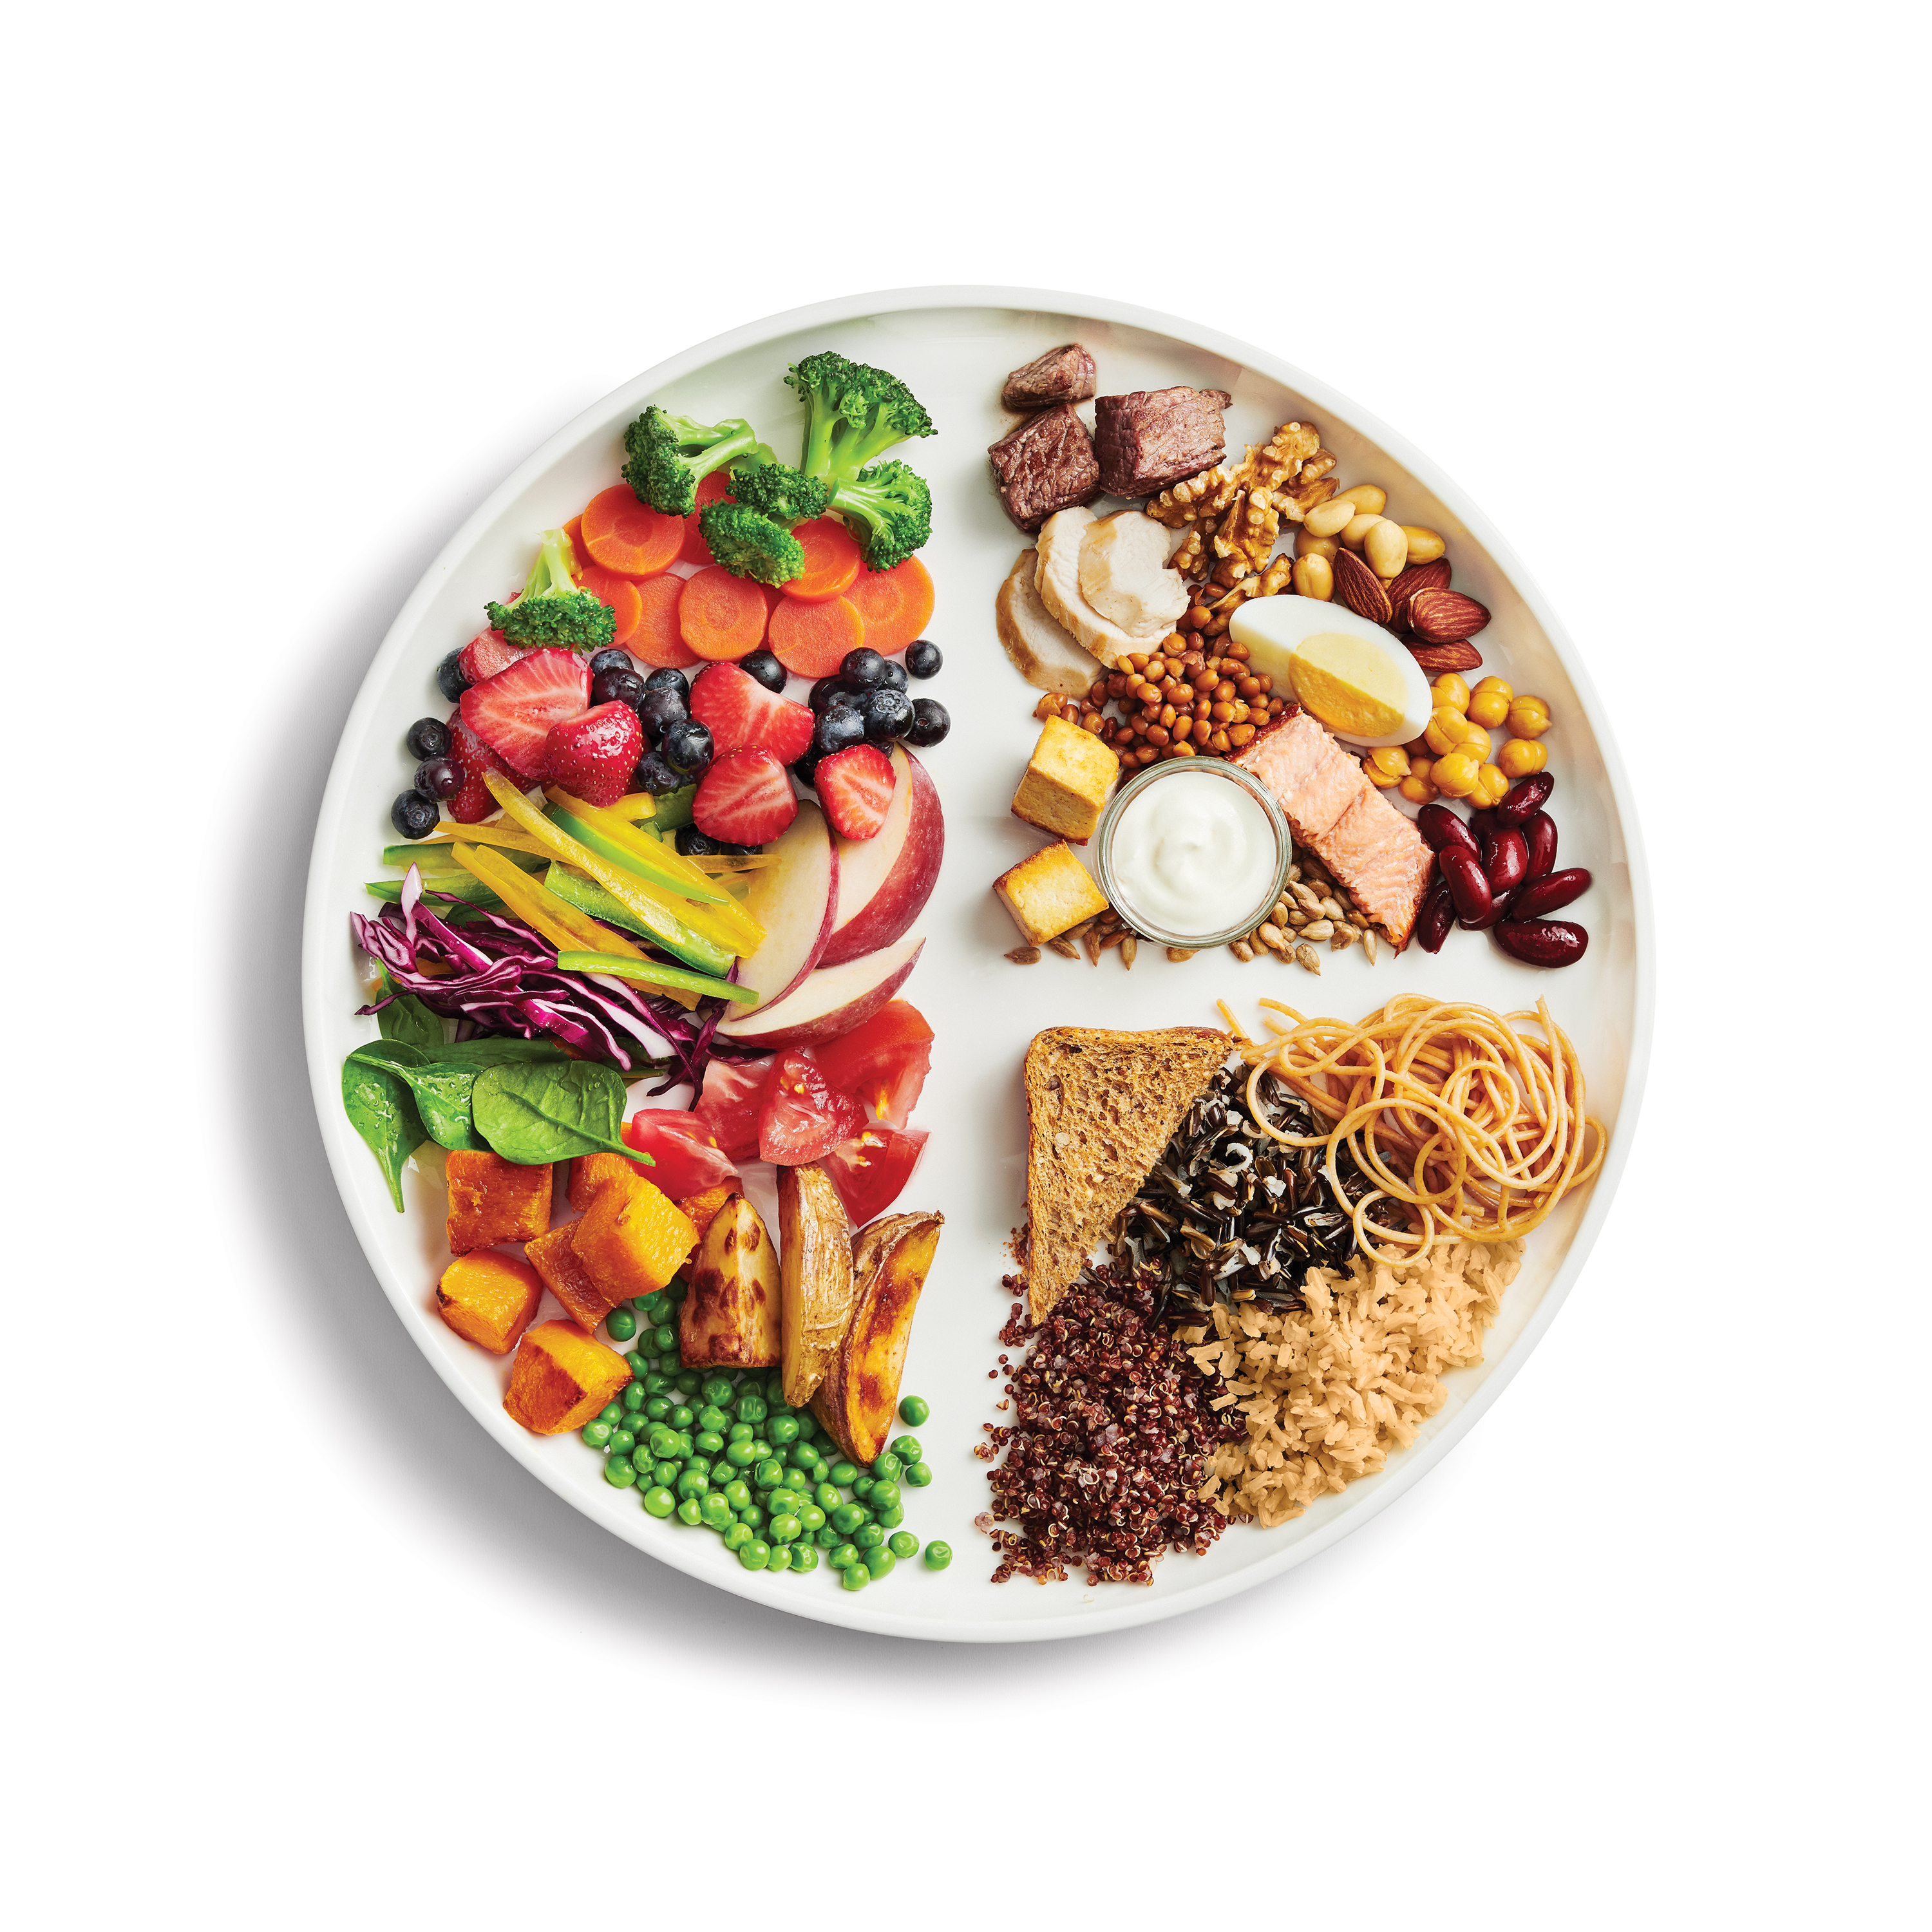 Canadian food guide eat variety healthy foods